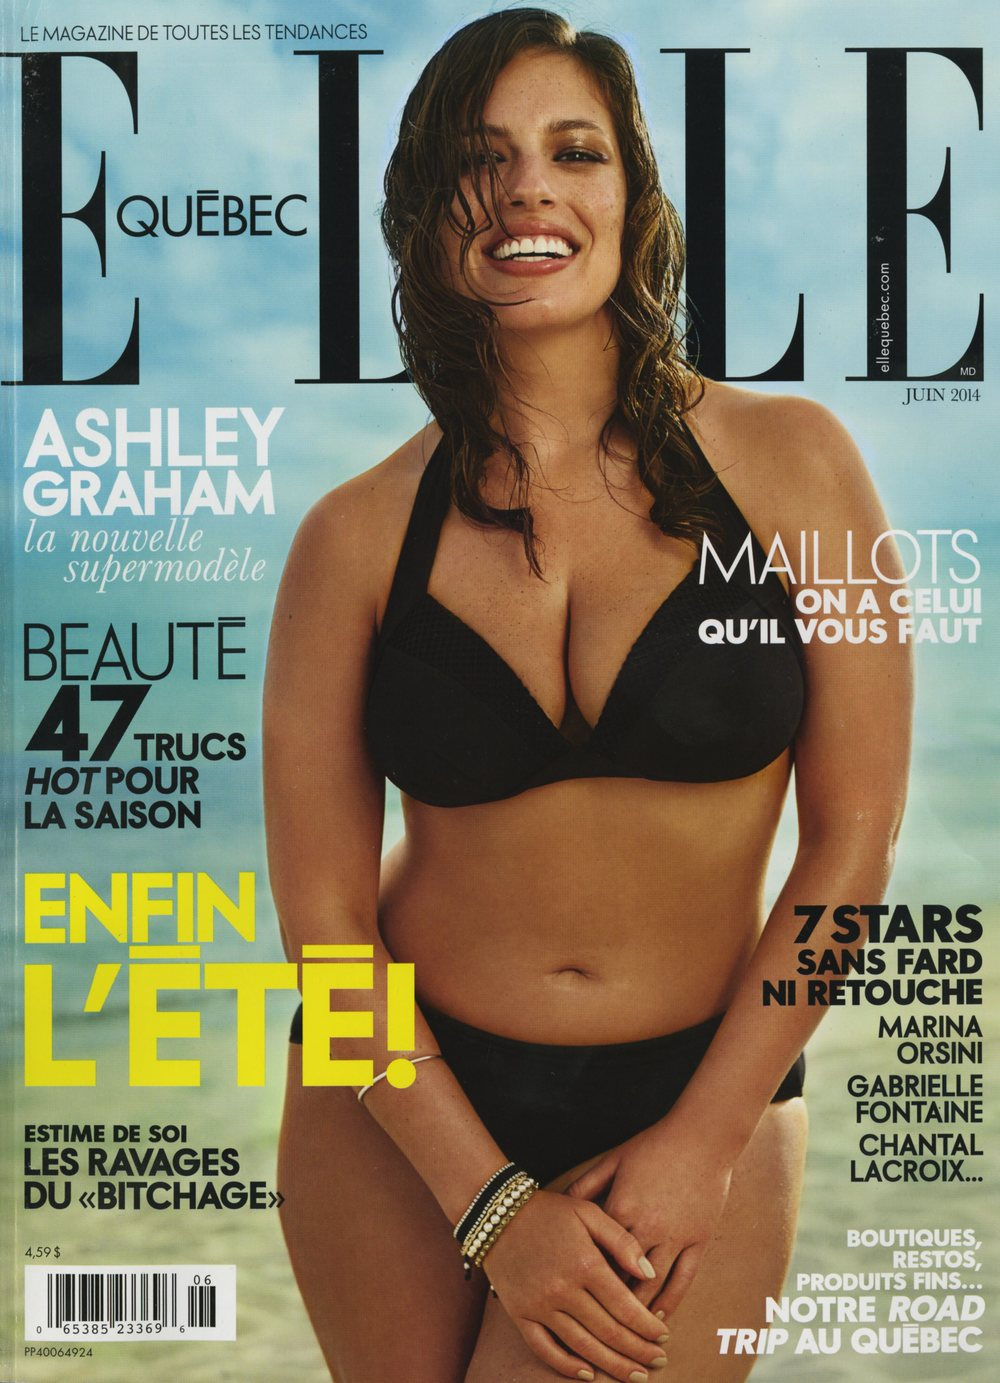 Elle_Quebec_June14_1.jpg